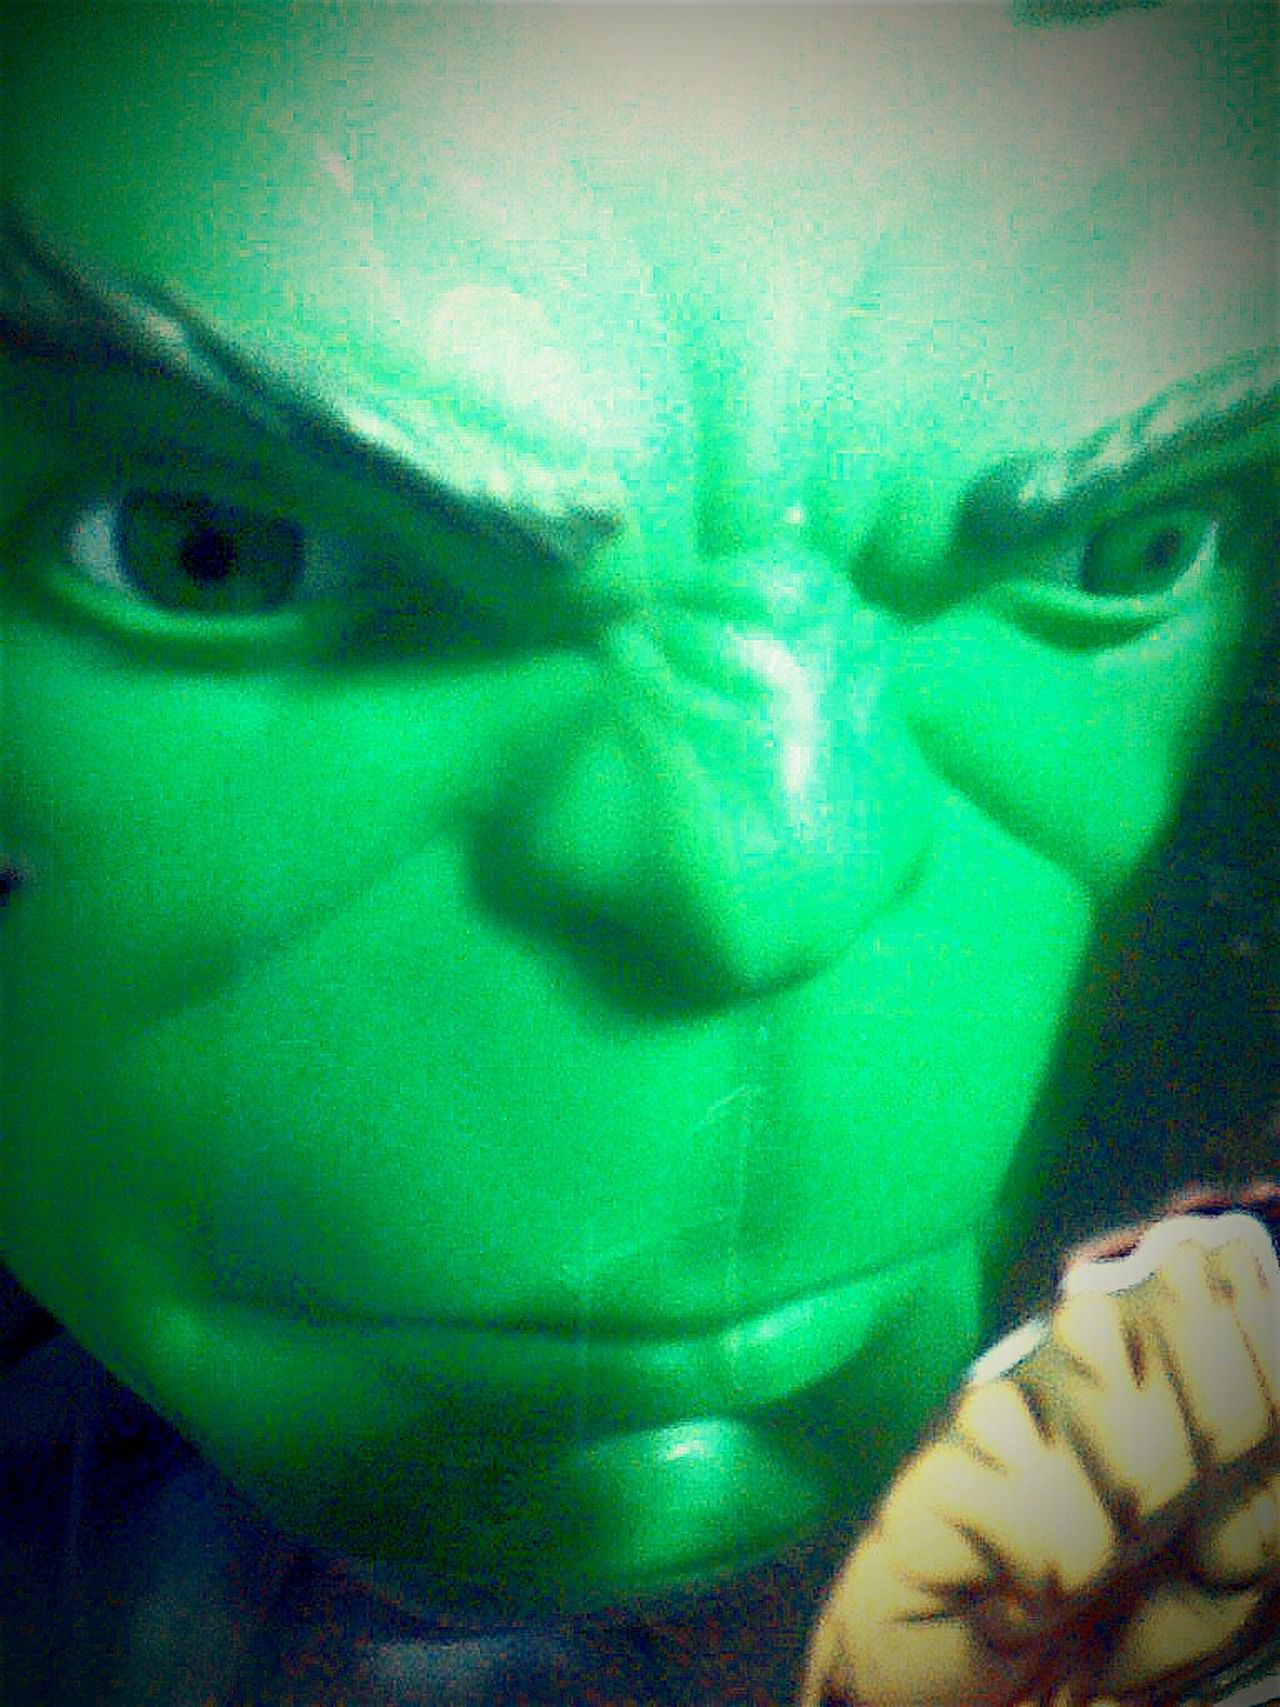 The Hulk The Incredible Hulk Superheroes MarvelHeroes Hulk Green Face Green Colour Marvel Comics Comic Heroes Super Hero Greenface Pulse Rate Rising Face Faces Green Green Green Green!  Check This Out Avengers Aarrrgghhh Theincrediblehulk The Green Man Thehulk Hulkface Marvel Marvelcomics